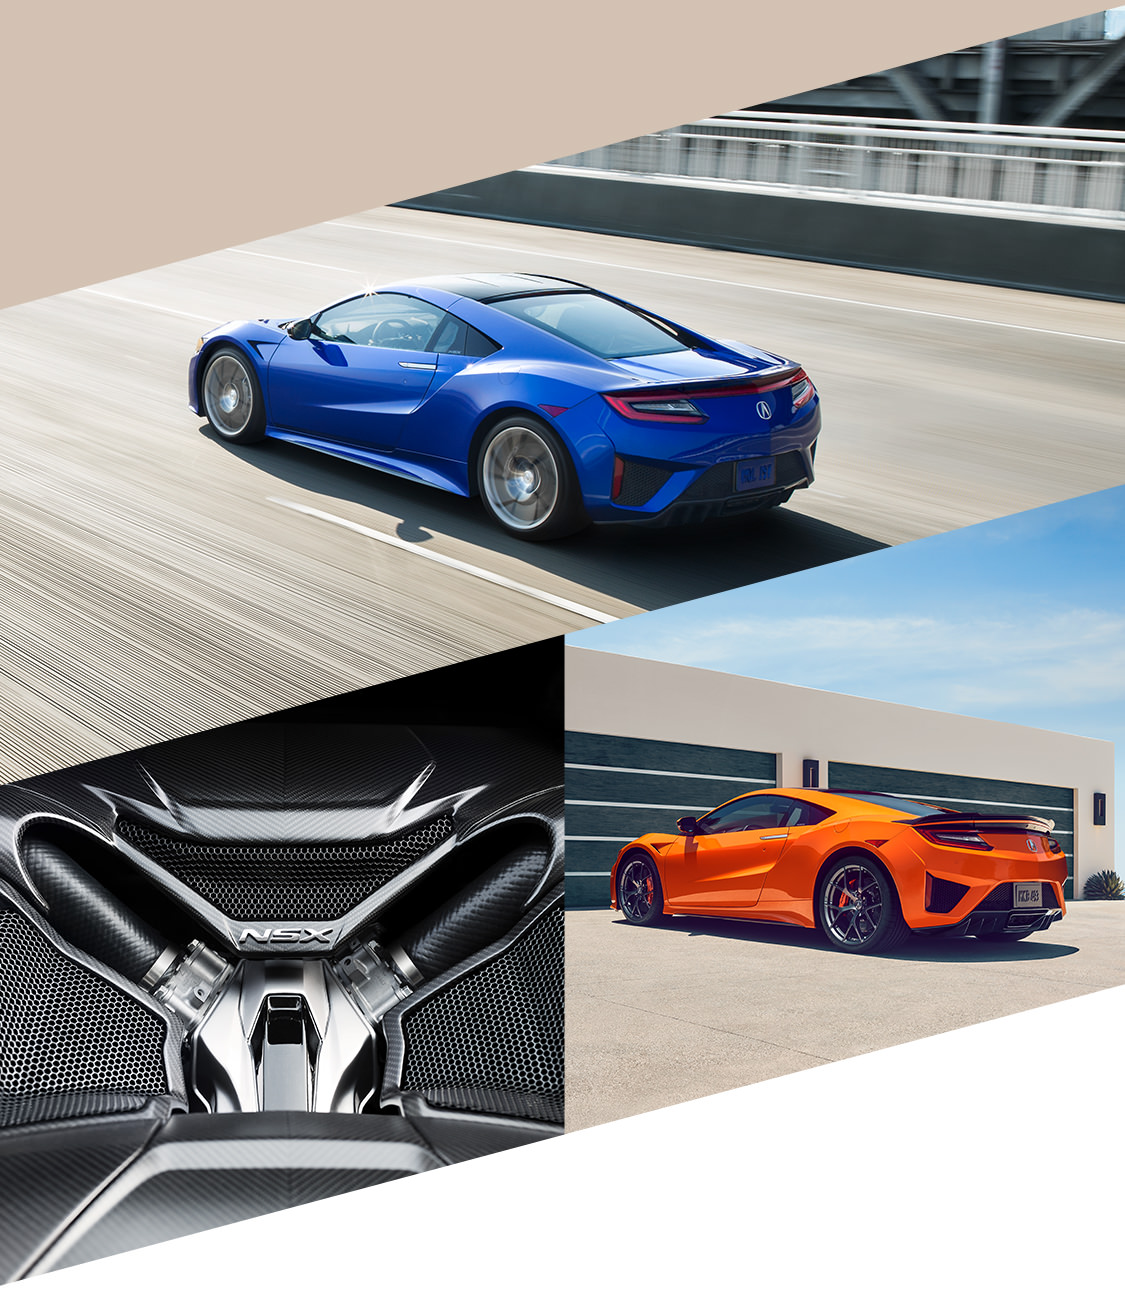 Next Gen Nsx Supercar New Details Acuracom Acura Exhaust System Diagram Red Interior Seatbacks